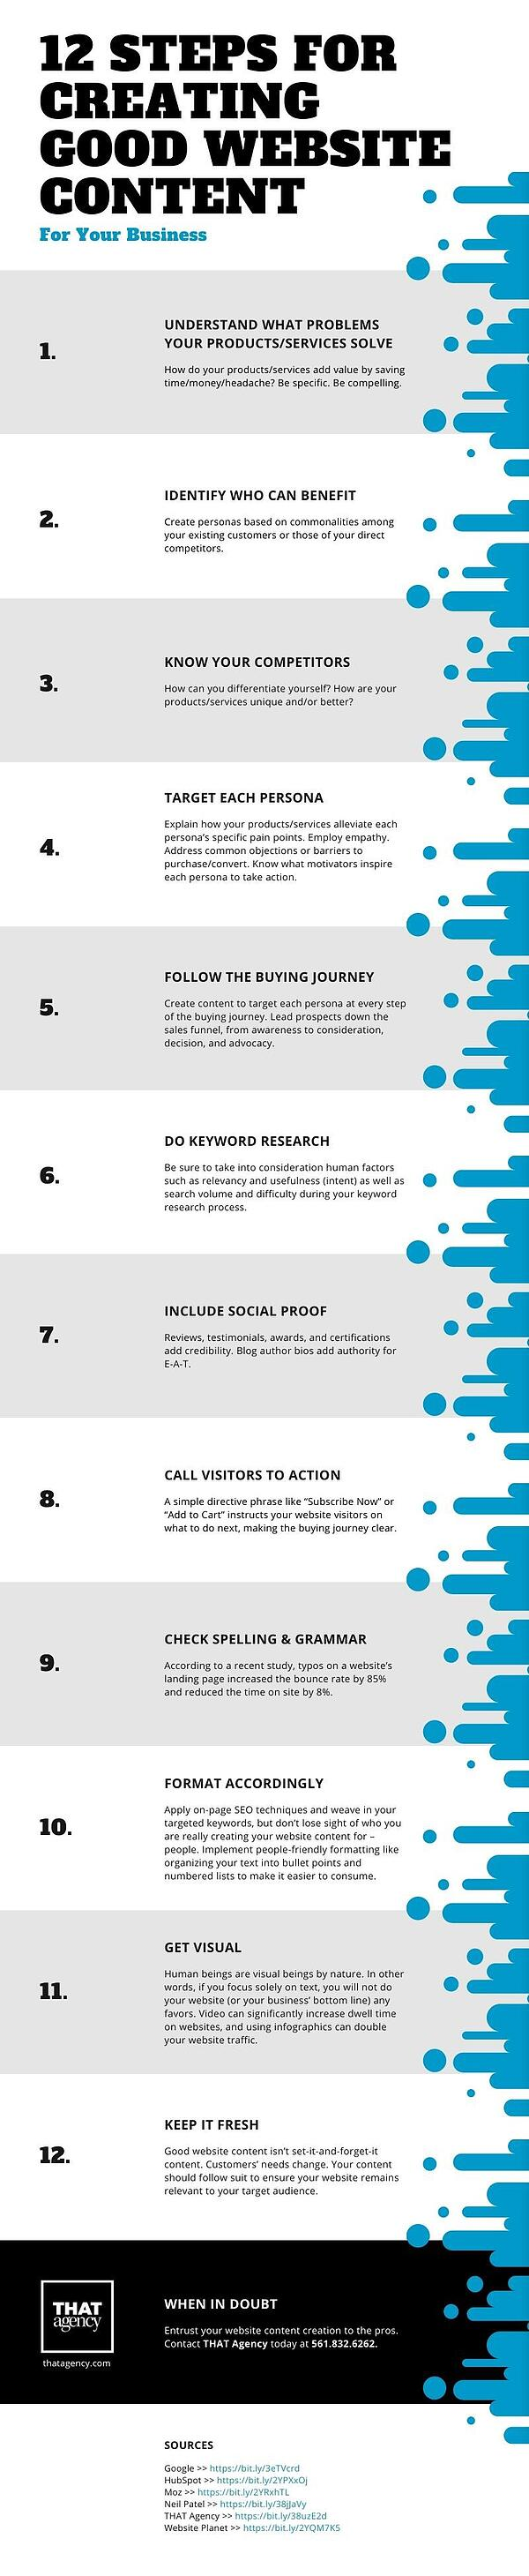 12 steps for creating good website content